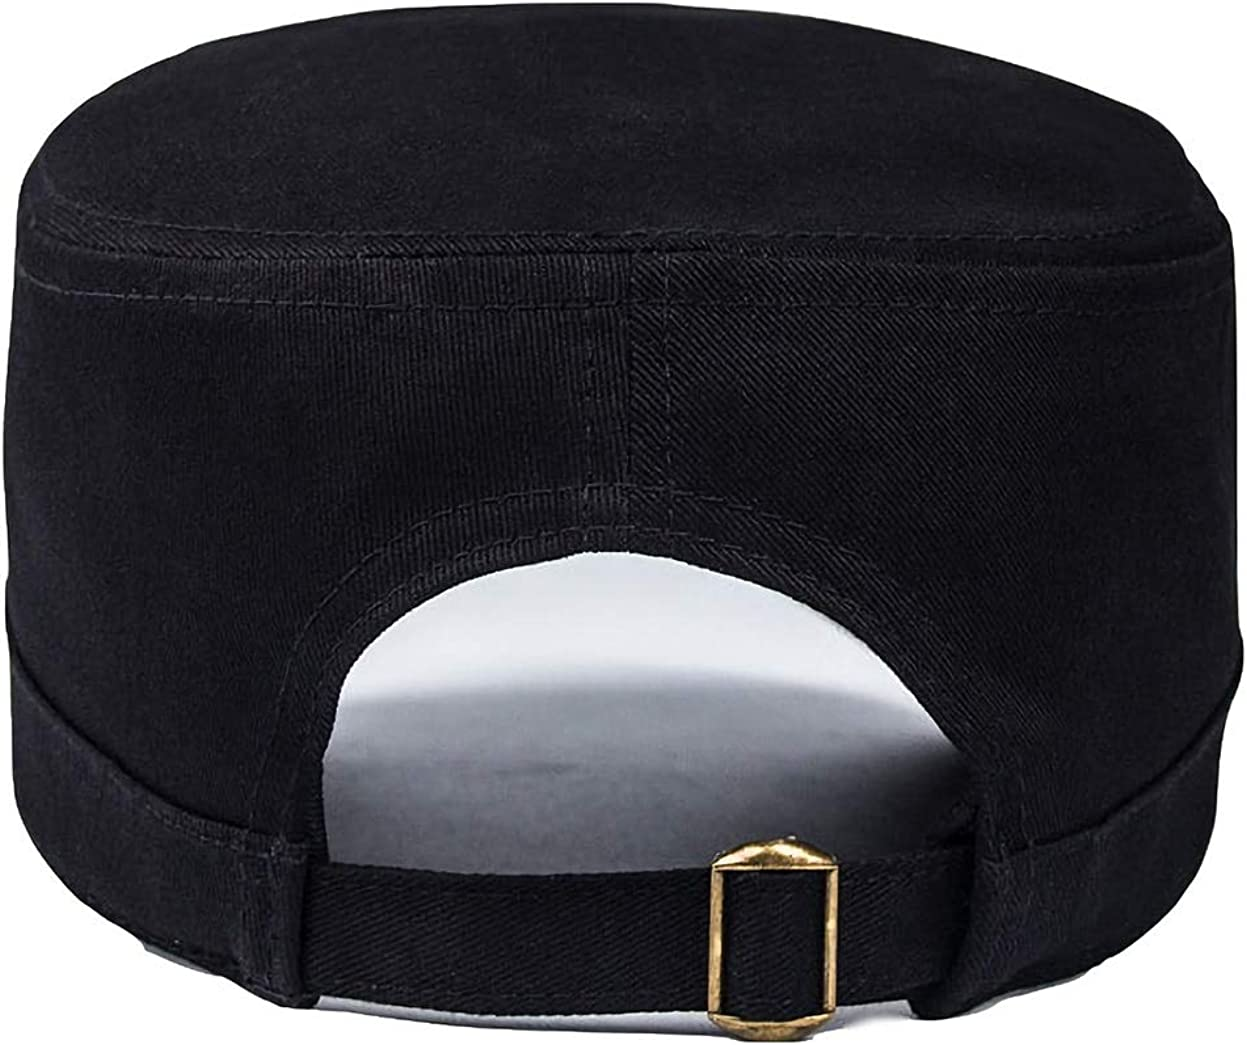 S Fasbys Unisex 100/% Cotton Twill Military Cadet Cap Men Women Fat Top Hat Solid Baseball Visor Cap Black:56cm